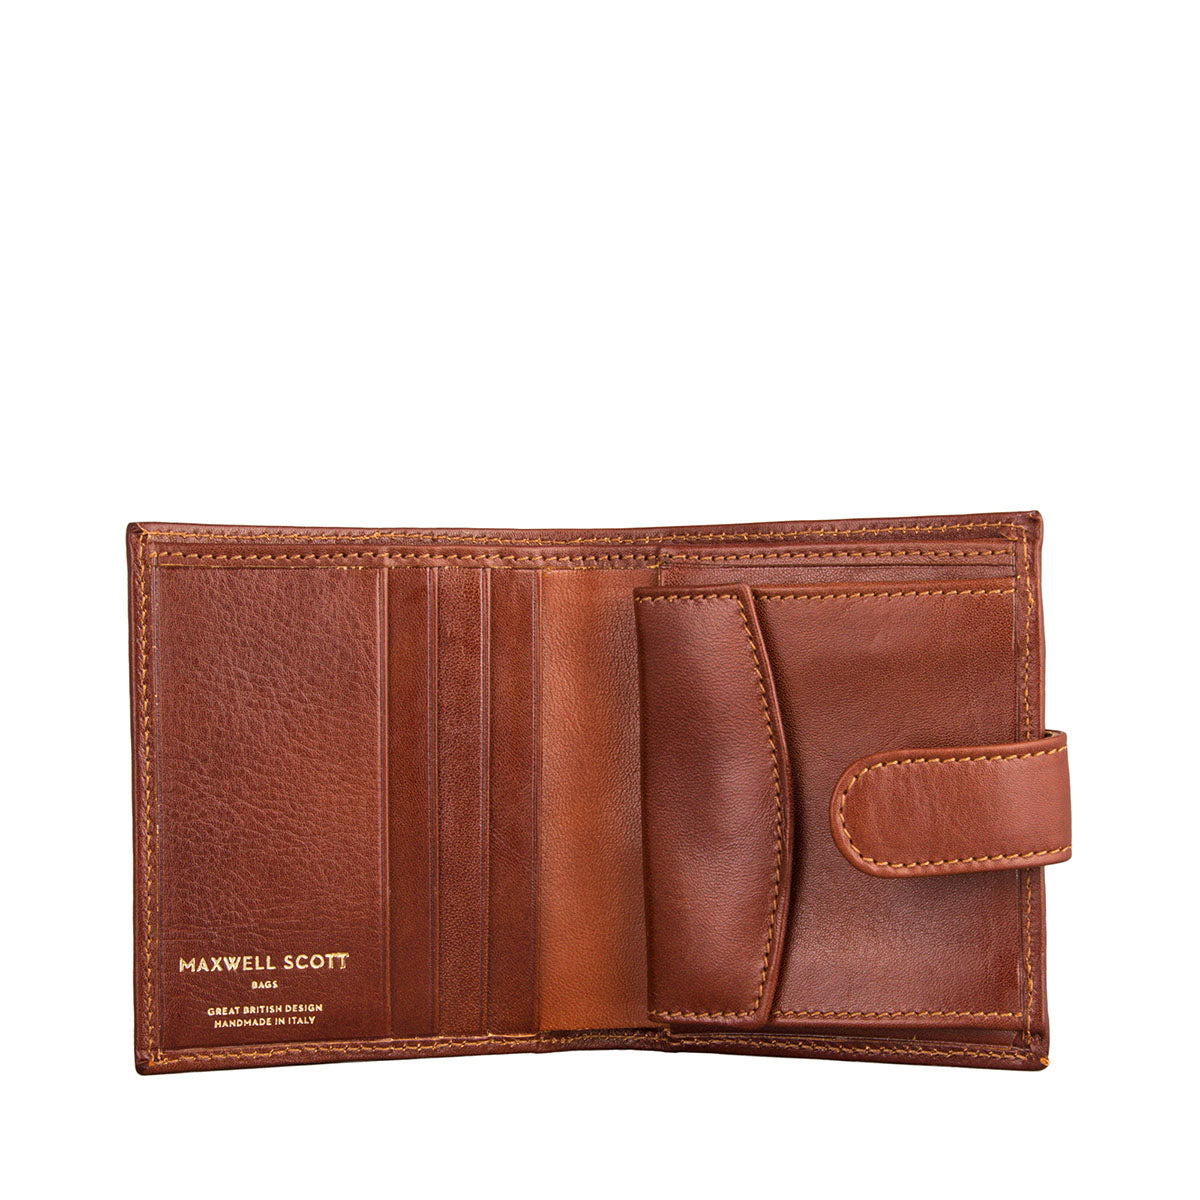 Image 2 of the 'Pietre' Chestnut Veg-Tanned Leather Compact Wallet